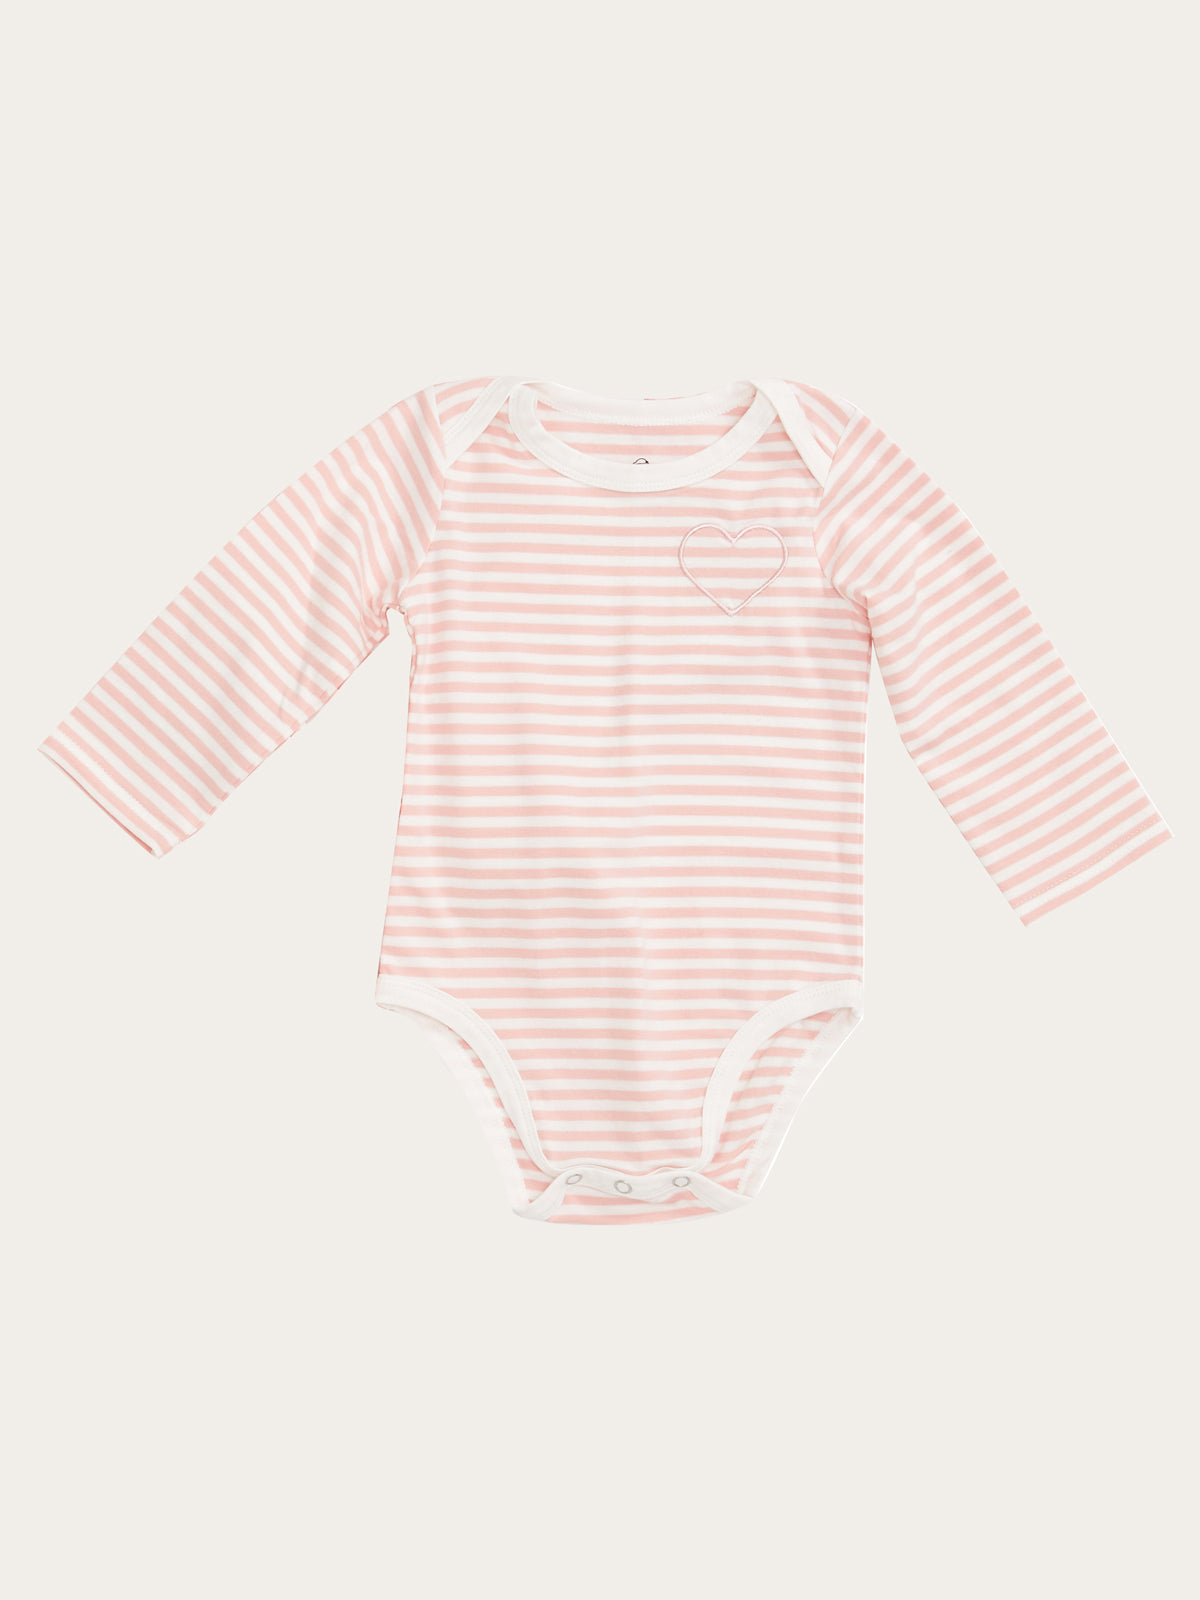 Roo Onesie in Rose Stripe By Morgan Lane